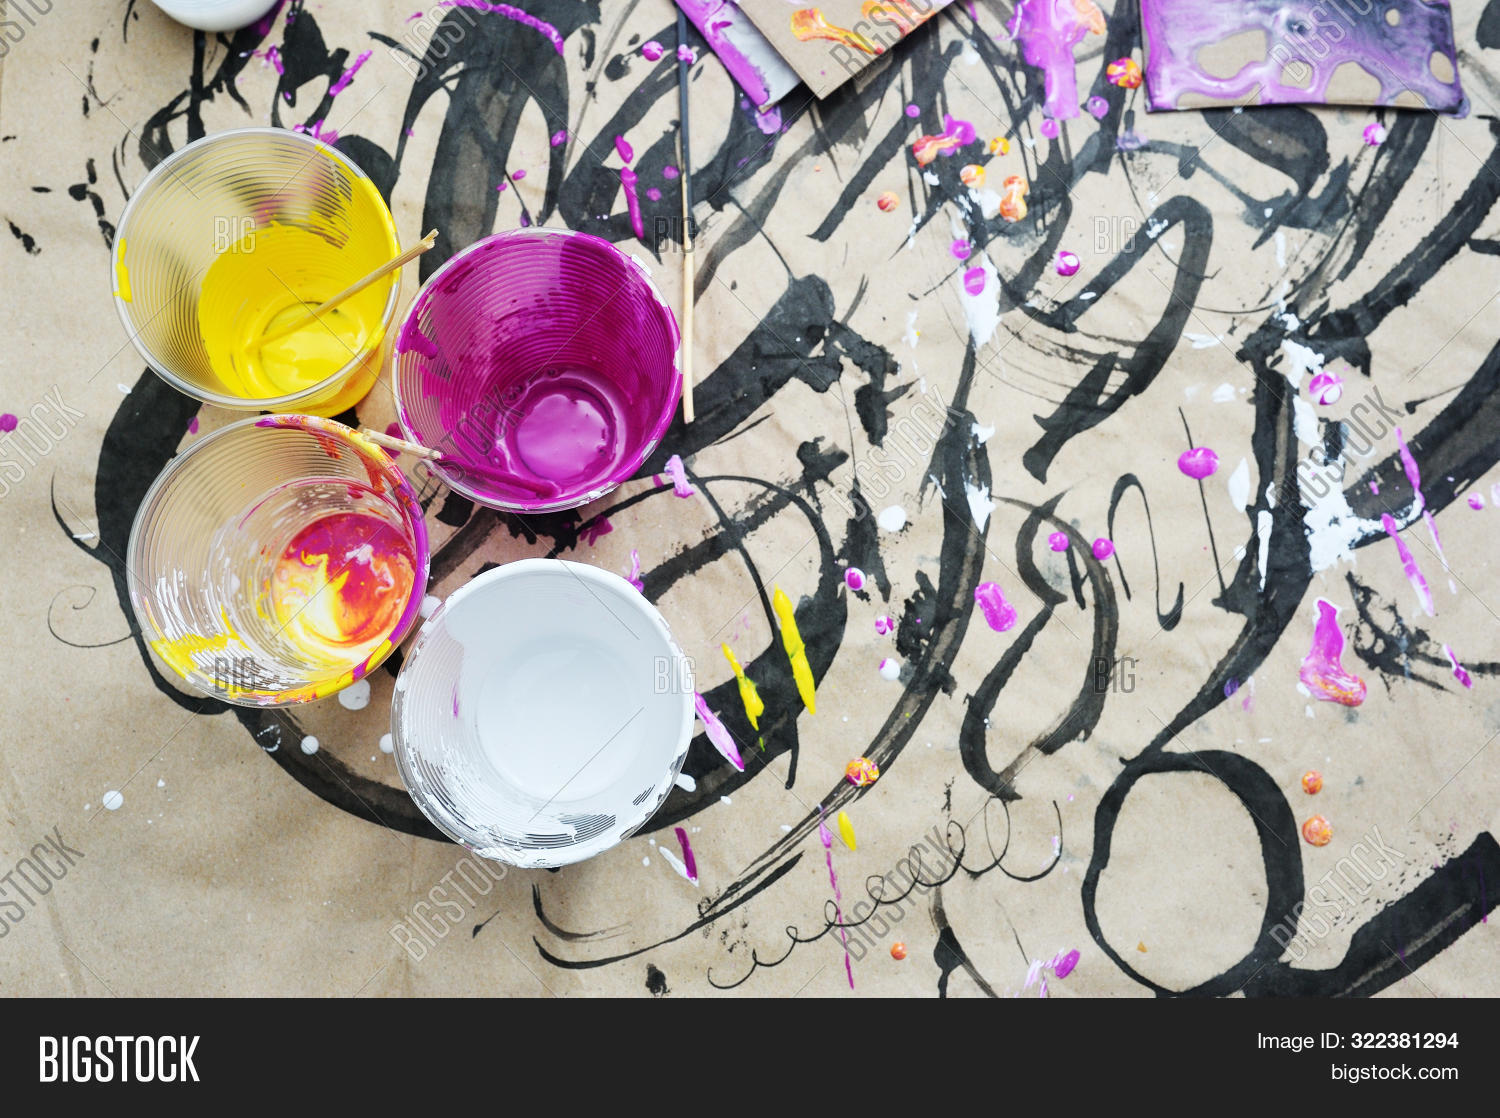 abstract,acrylic,action,art,artistic,backdrop,background,banner,black,block,bright,brush,canvas,color,colorful,coloring,composition,creativity,cup,design,drawing,drawn,effect,element,frame,graphic,grunge,hand,illustration,image,ink,liquid,orange,paint,paper,pastel,plastic,rusty,splash,spring,stain,texture,textured,vibrant,vintage,wallpaper,water,watercolor,watercolour,white